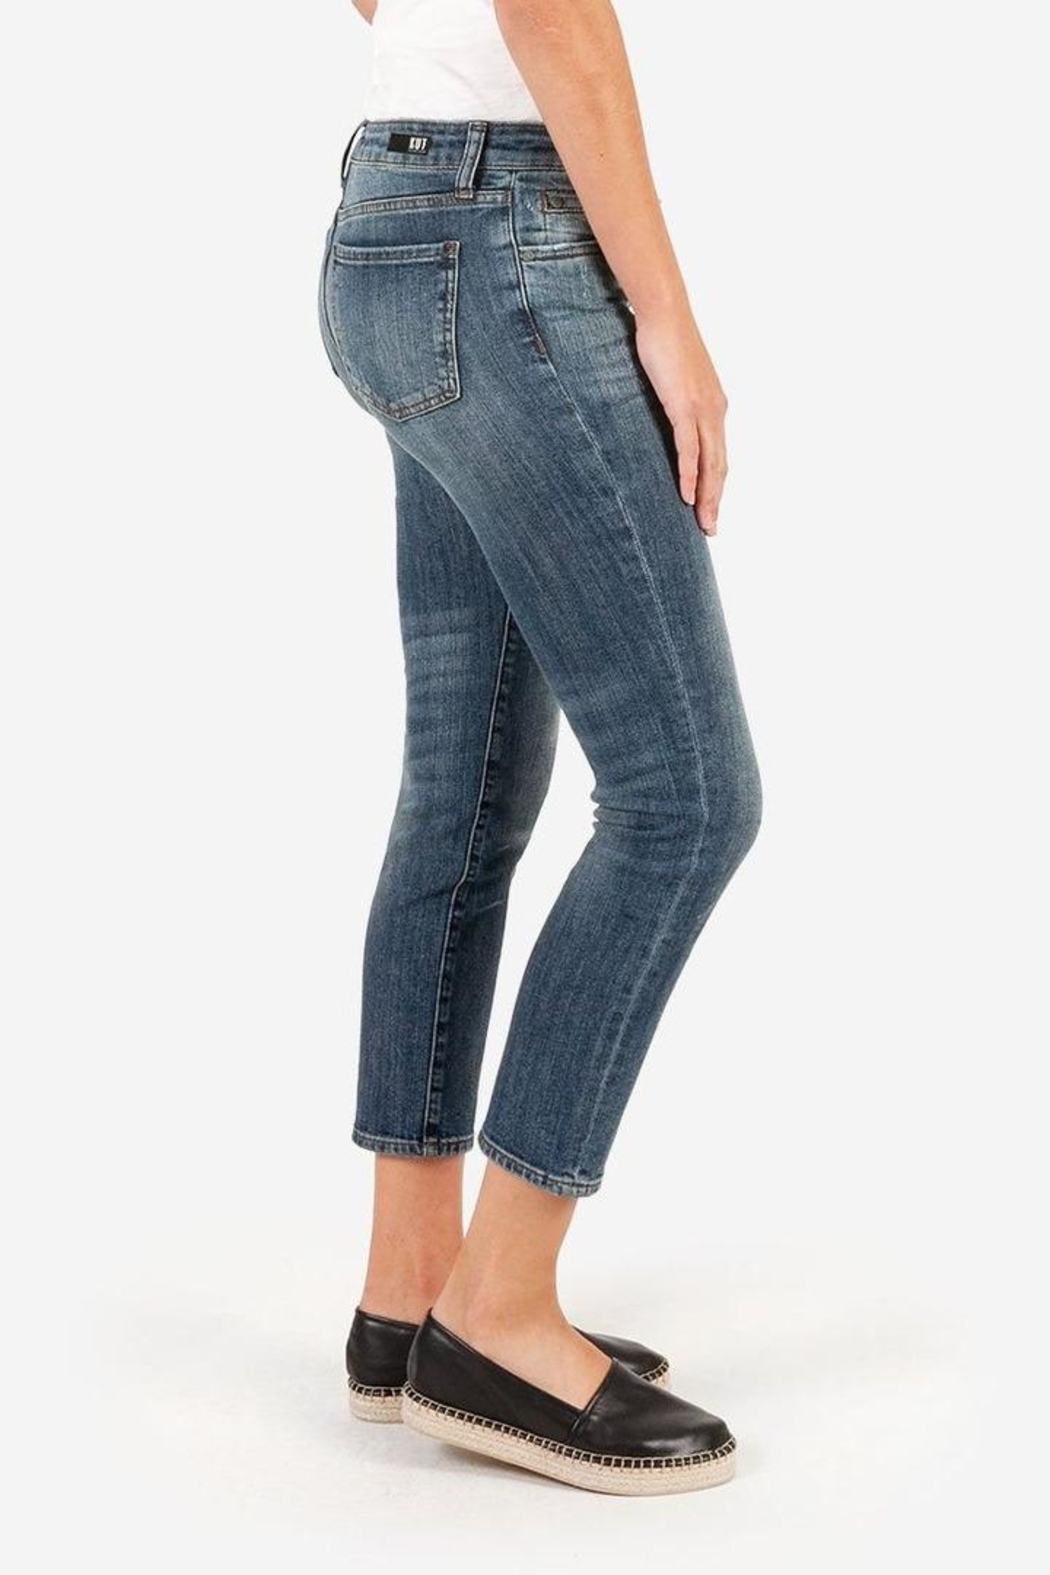 Kut from the Kloth Catherine Ankle Straight-Leg - Side Cropped Image